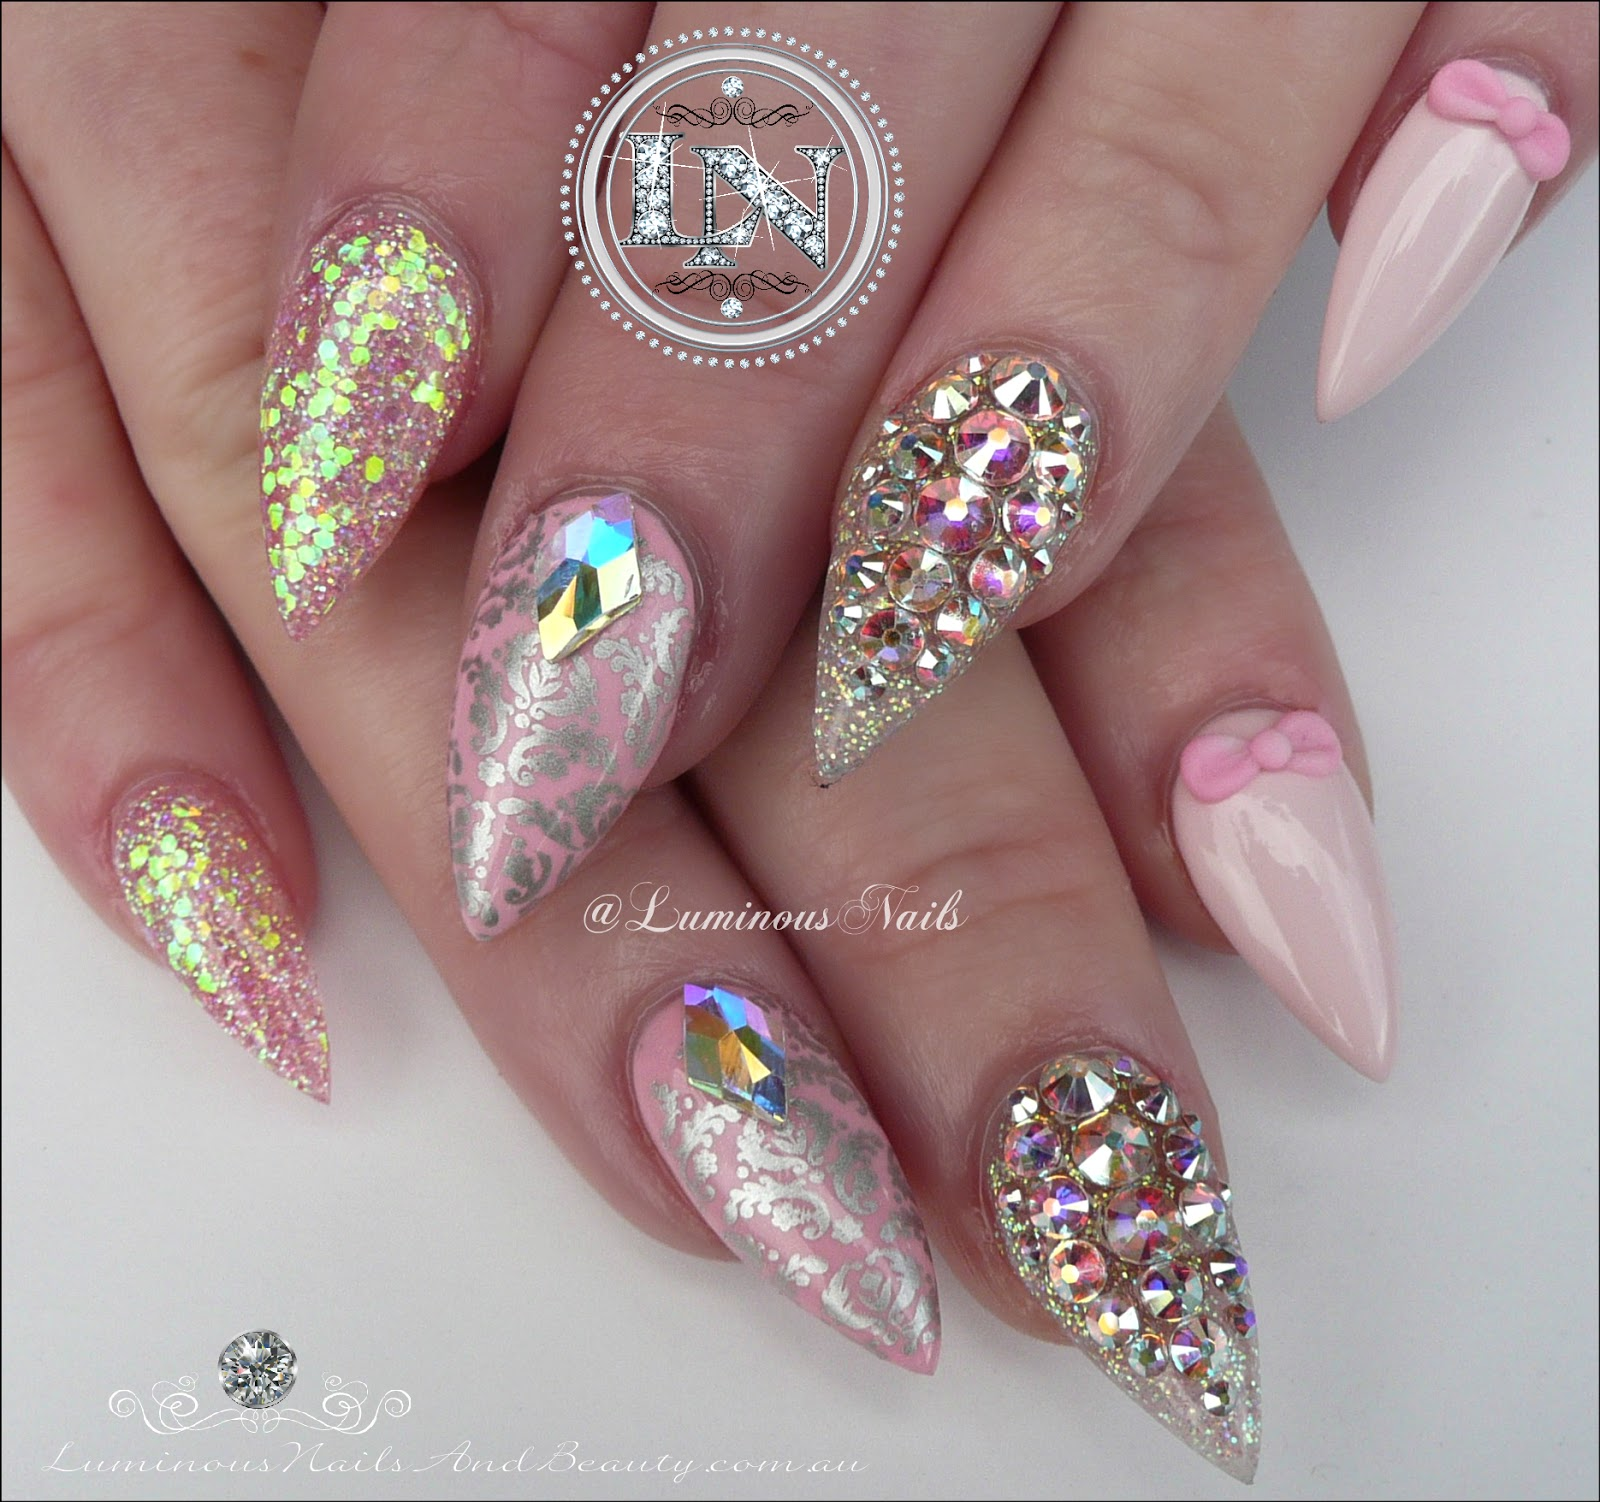 Luminous Nails: Girly Nails... Pretty in Pink with Bling ...